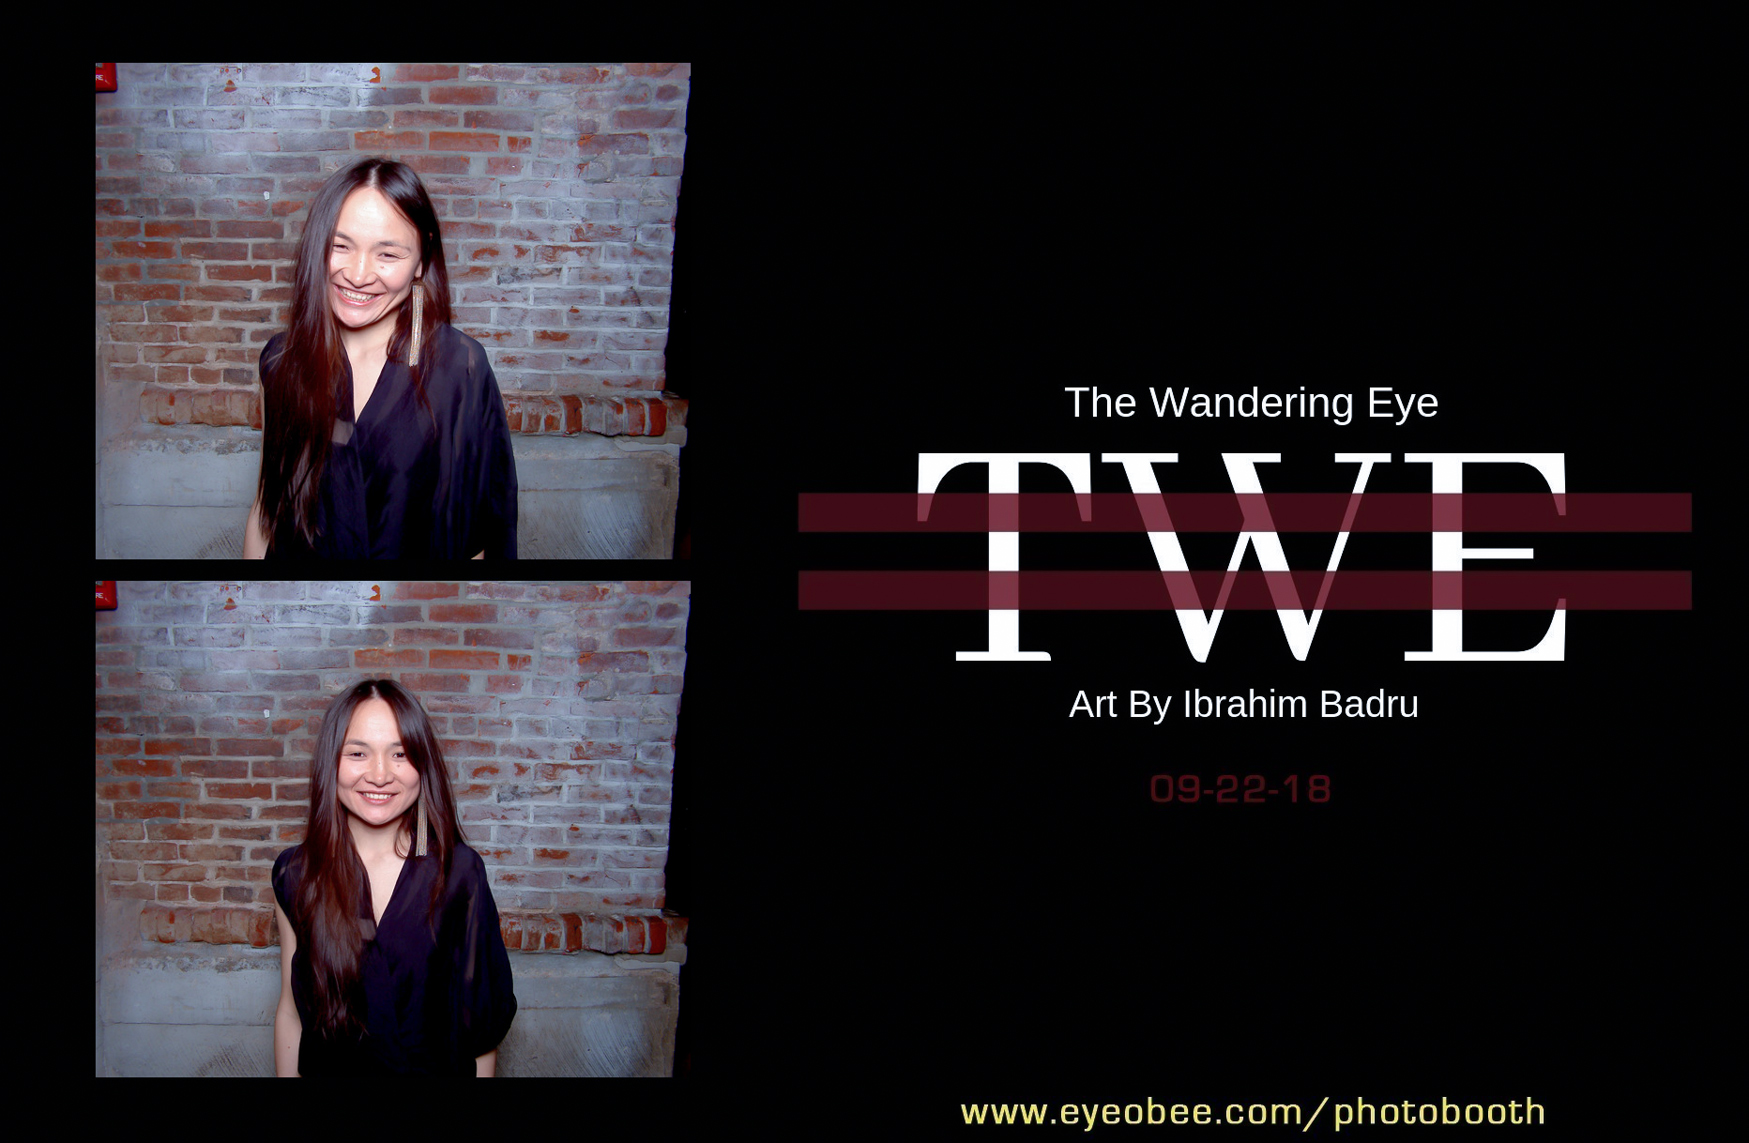 eyeobee PhotoBooth The Wandering eye art by Ibrahim Badru-0-43.jpg